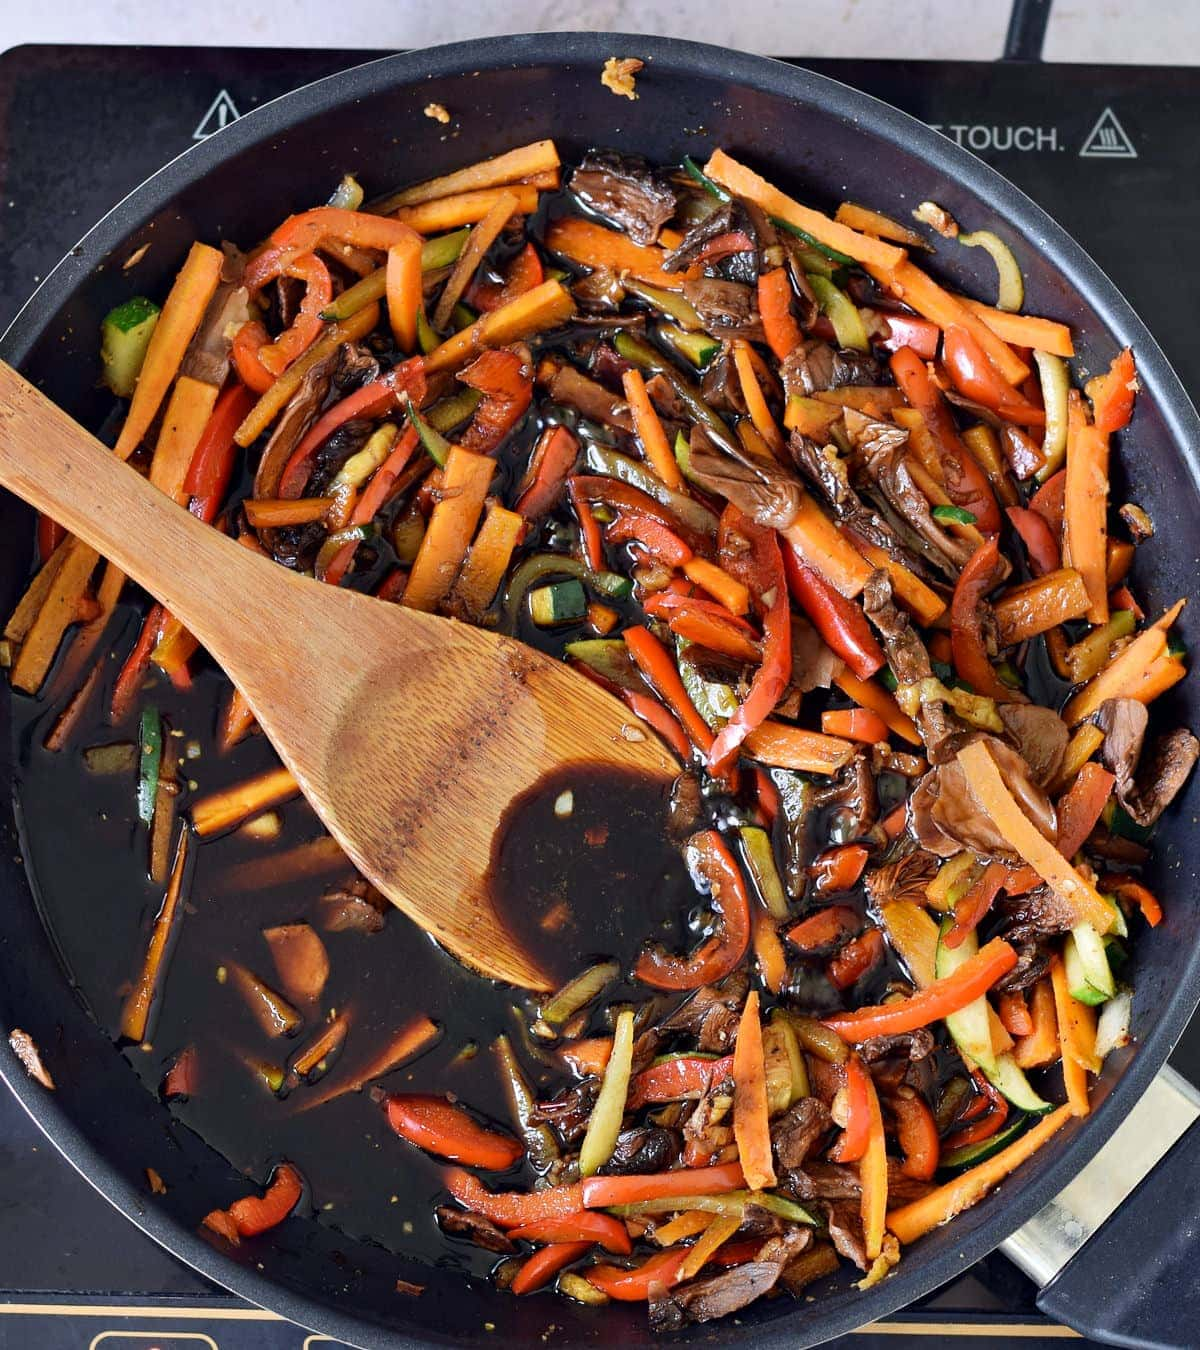 veggies with brown sauce in pan